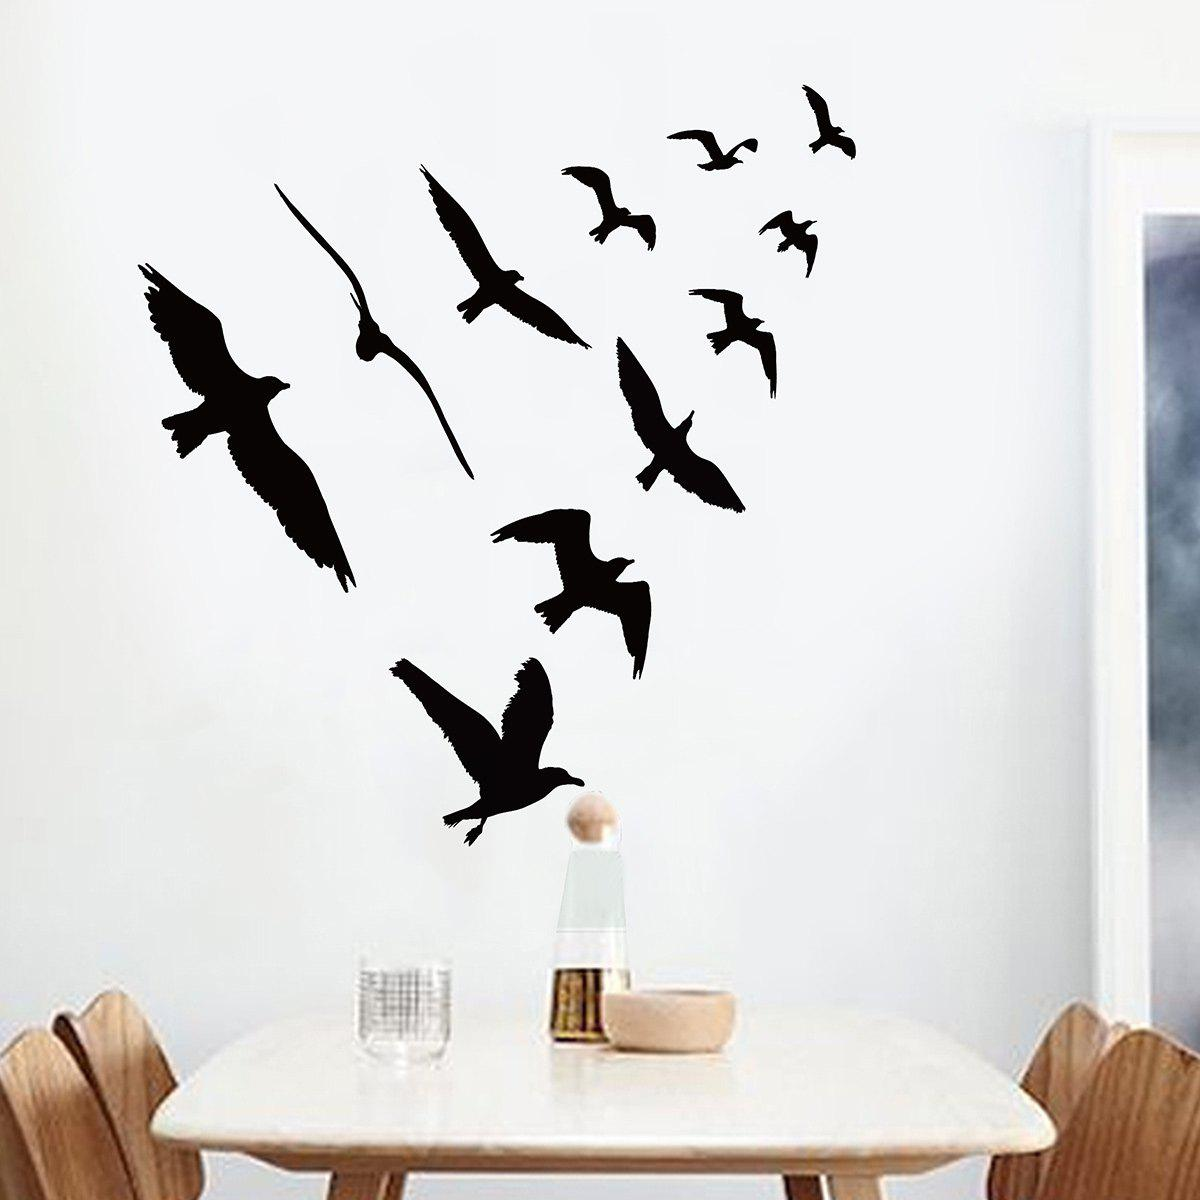 Decorative Vinyl Birds Group Wall Sticker lily flower vinyl decorative wall art sticker